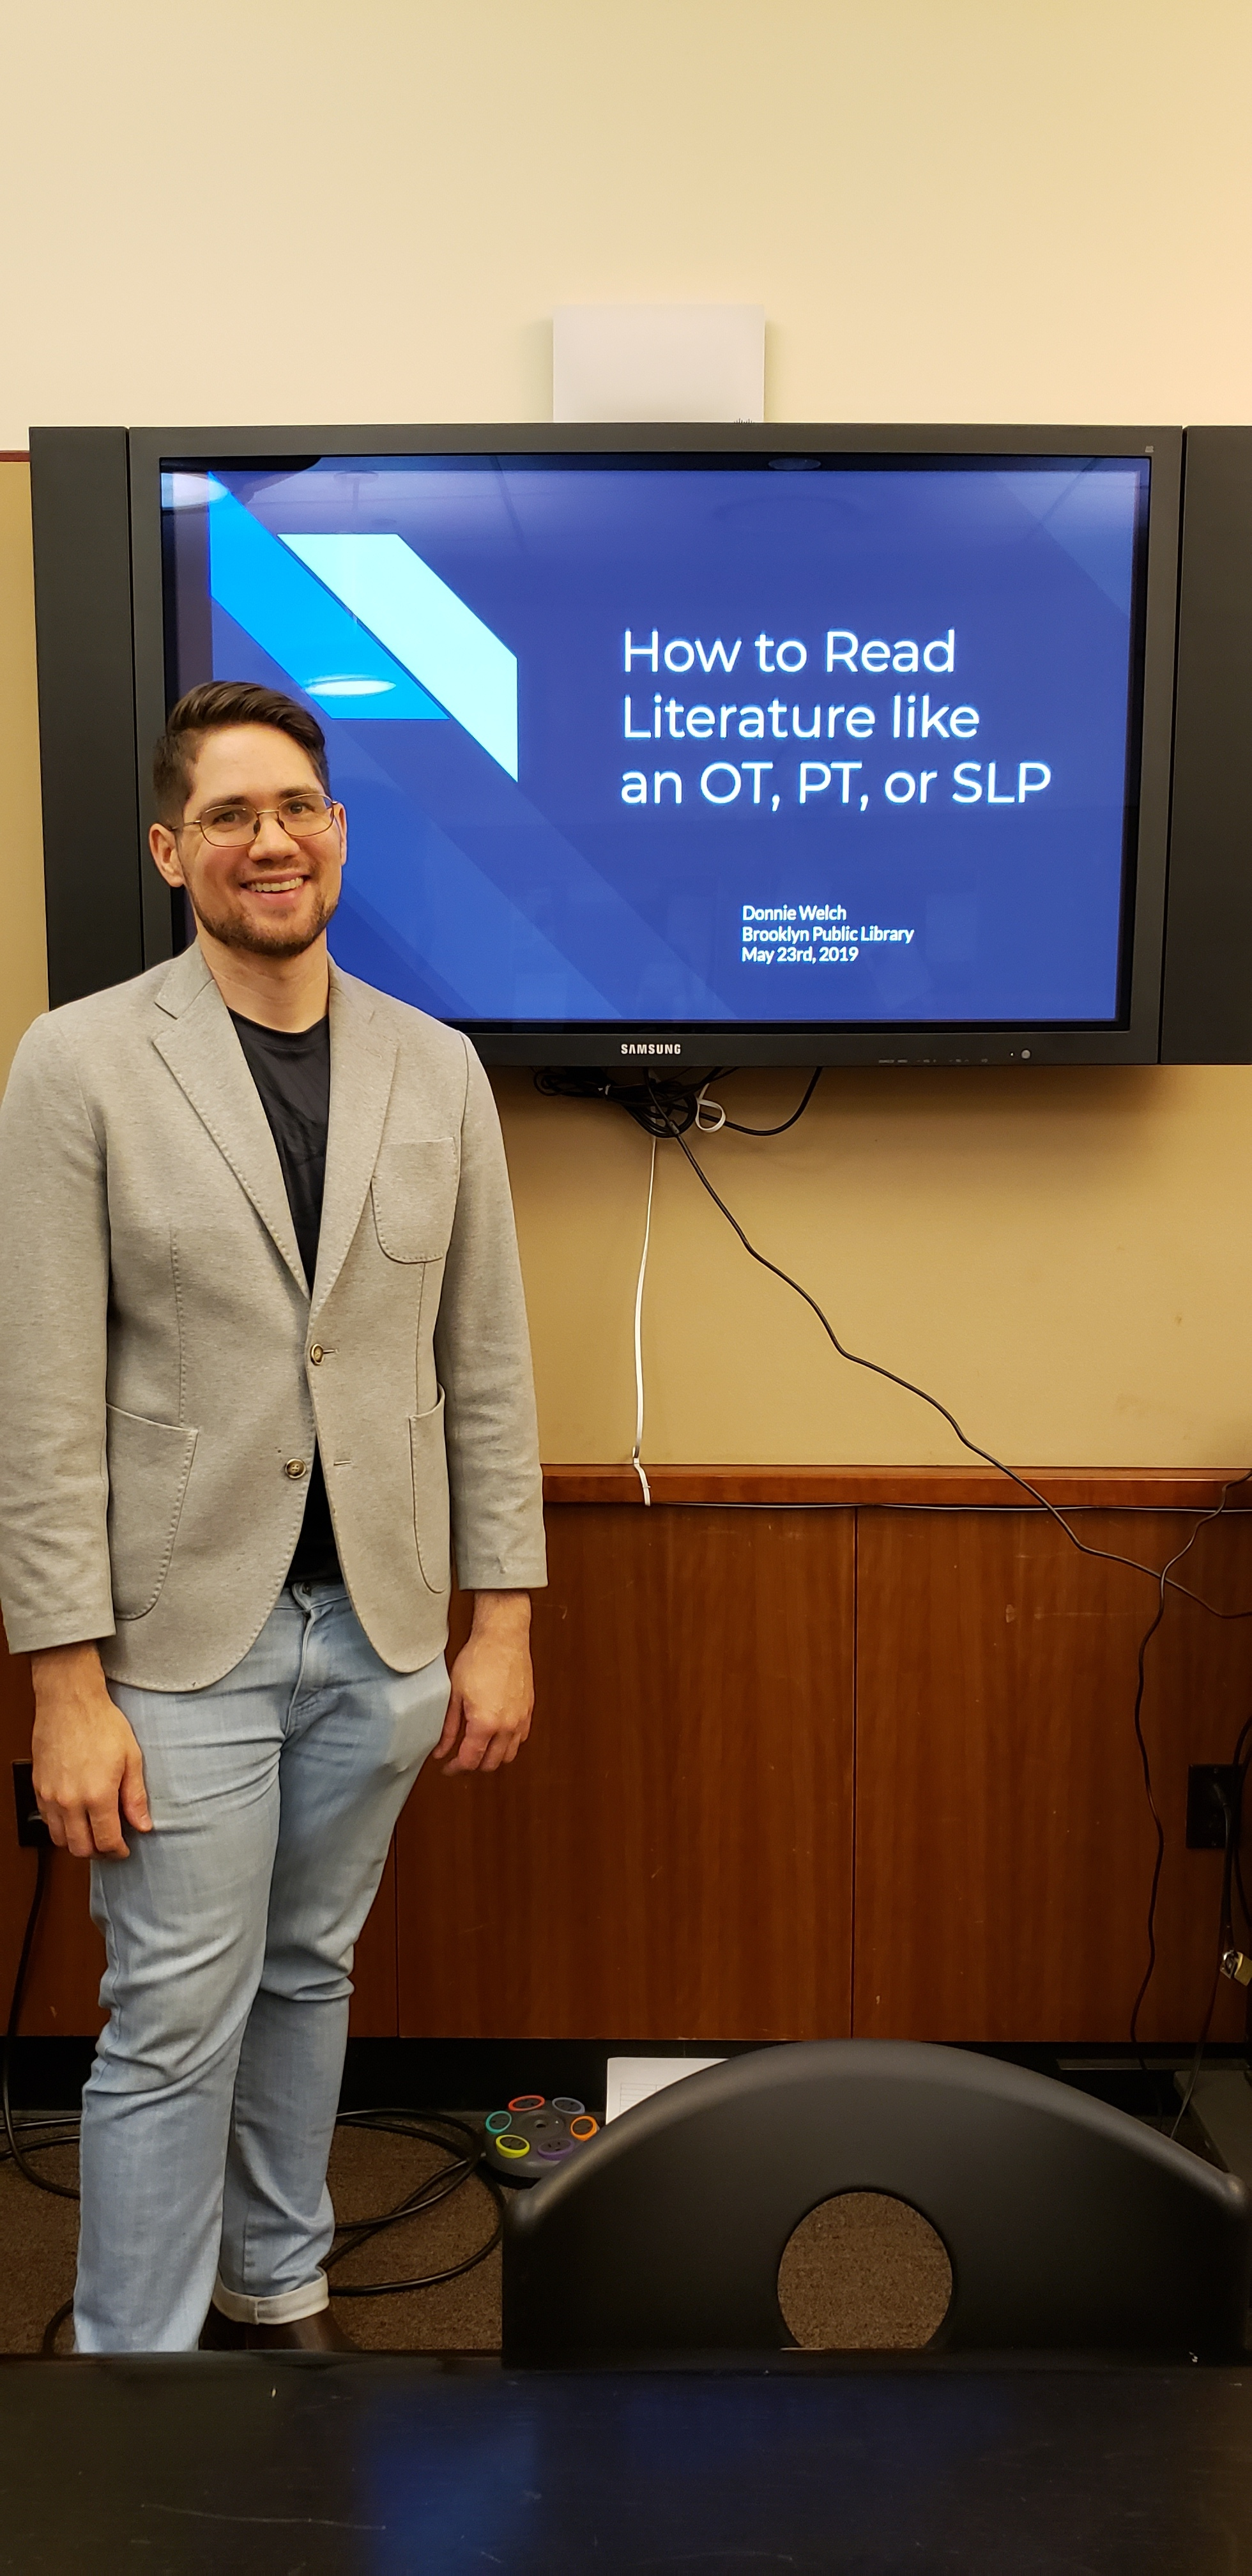 "Donnie Welch, a young white man, stands smiling at the front of a room in business casual attire. Behind him on a large, computer monitor is a presentation title slide reading, ""How to Read Literature like an OT, PT, or SLP"" in white lettering on a blue background."